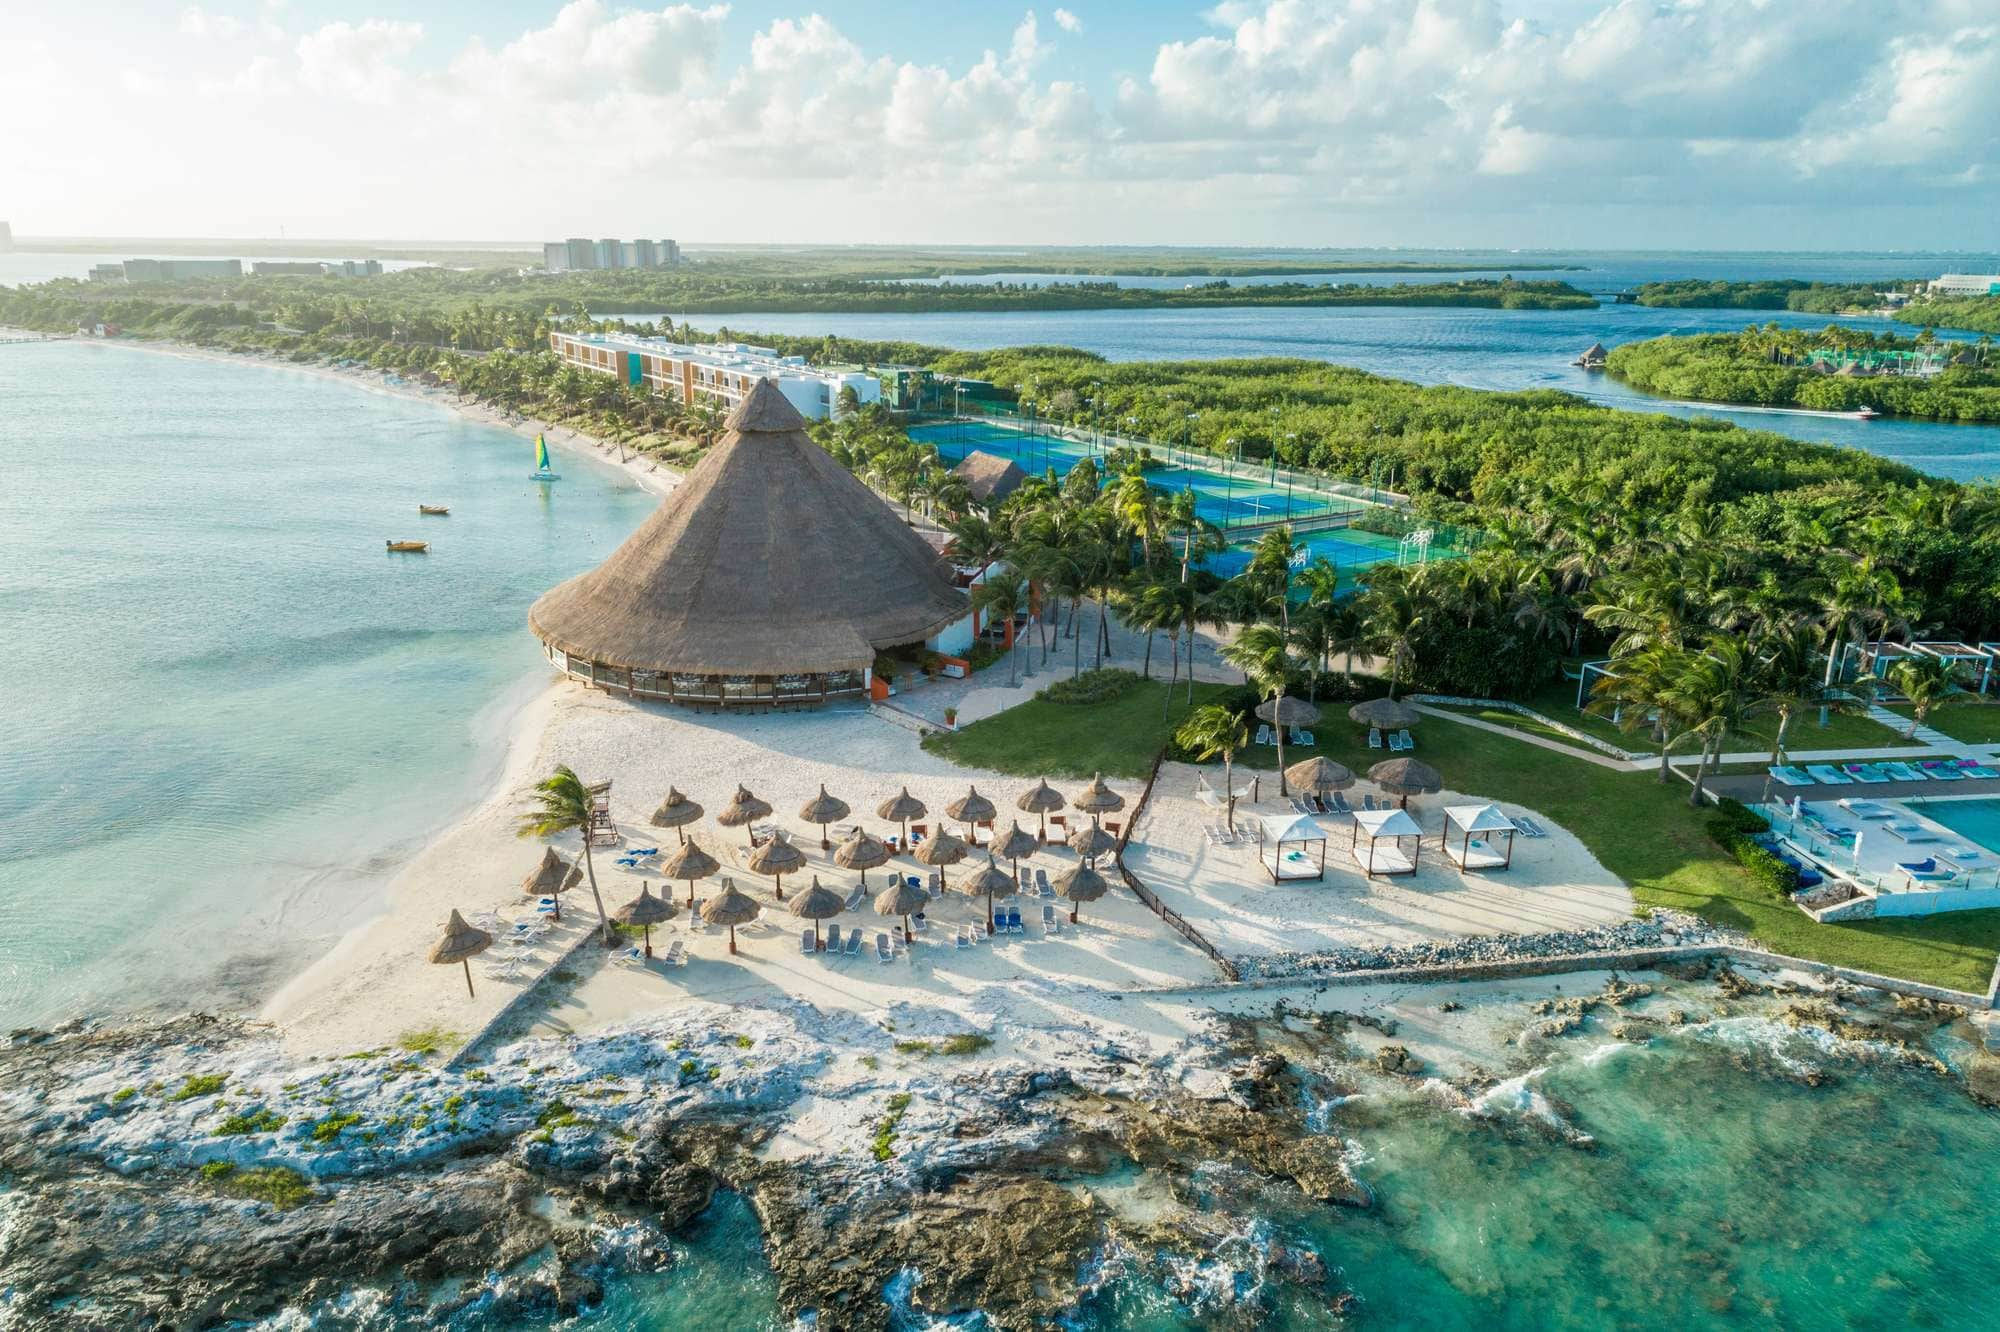 Club Med Cancun Yucatan is a beautiful hotel for families